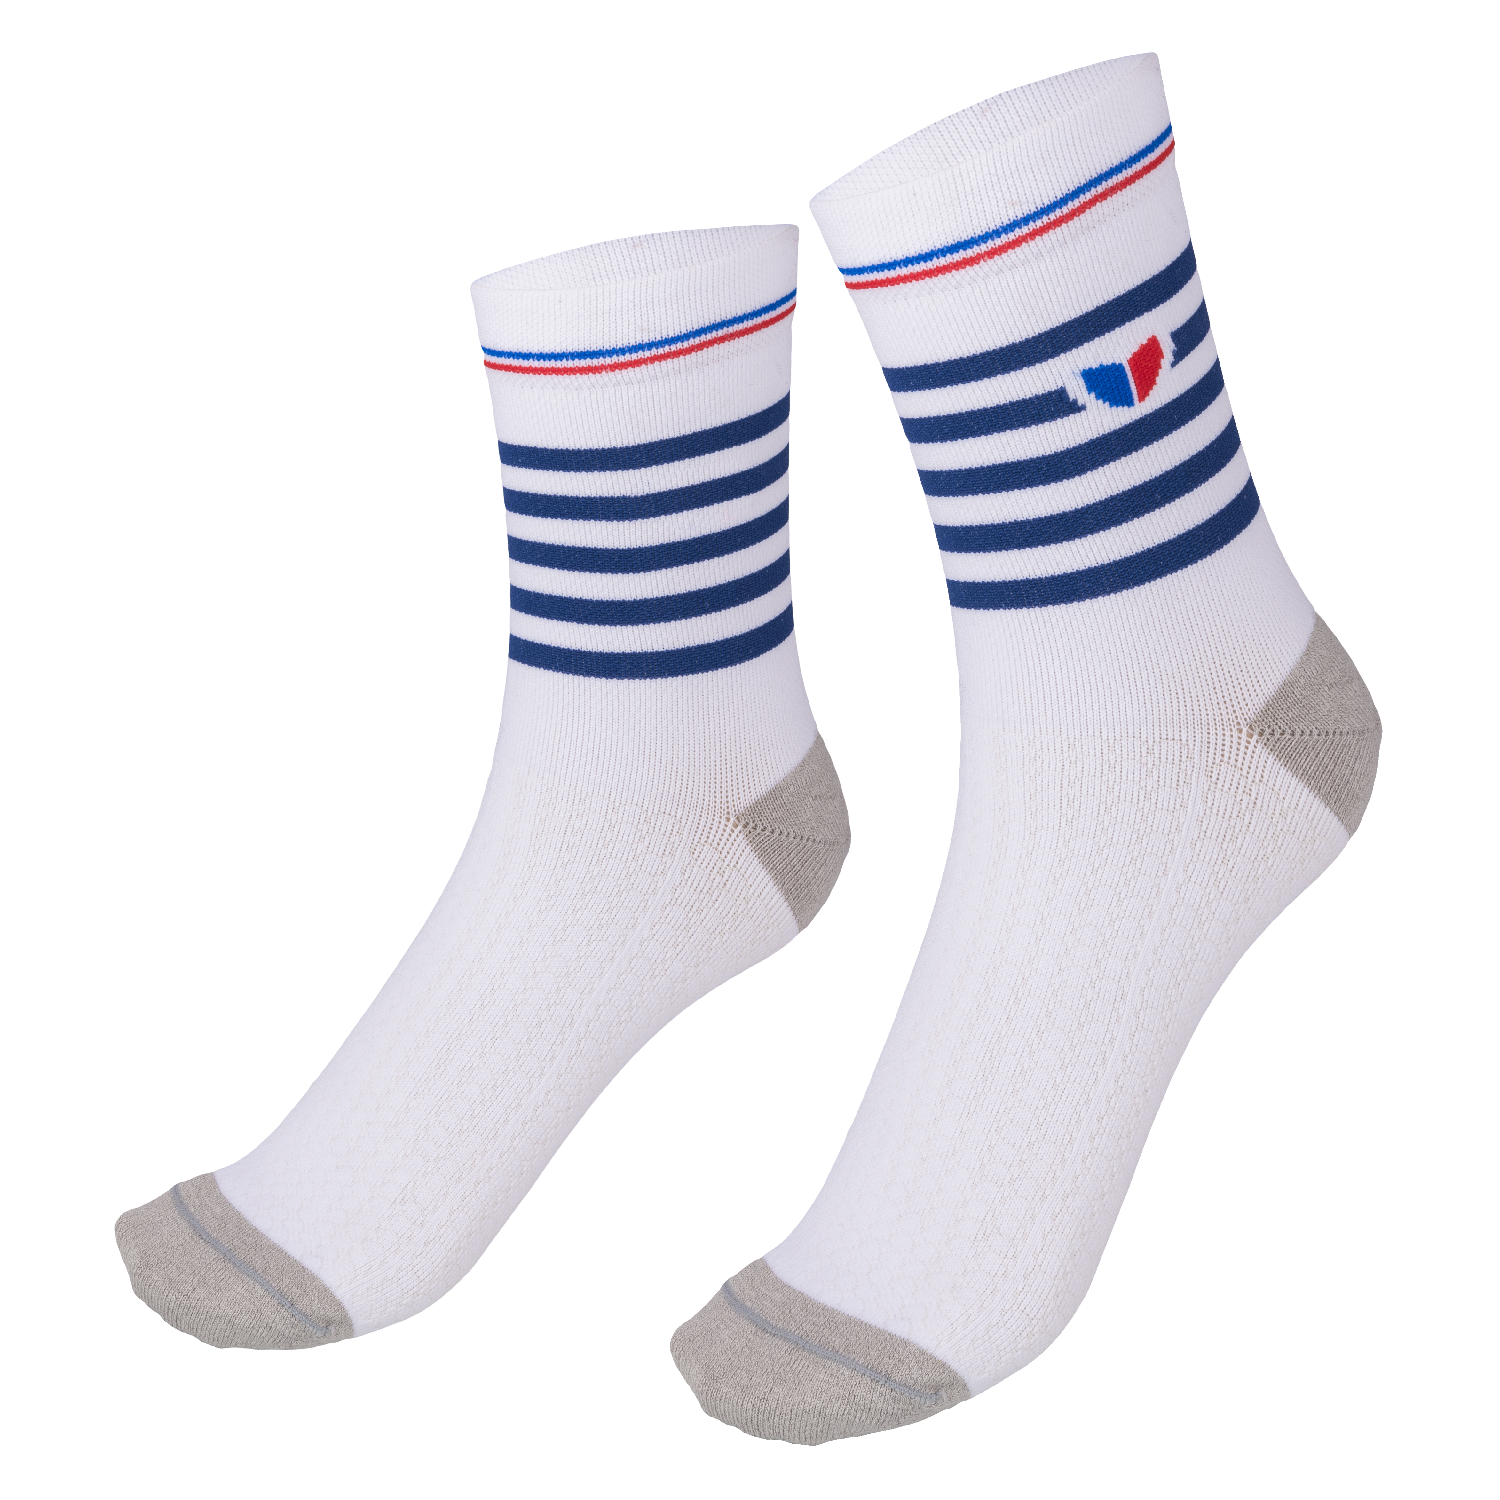 chaussettes mariniere